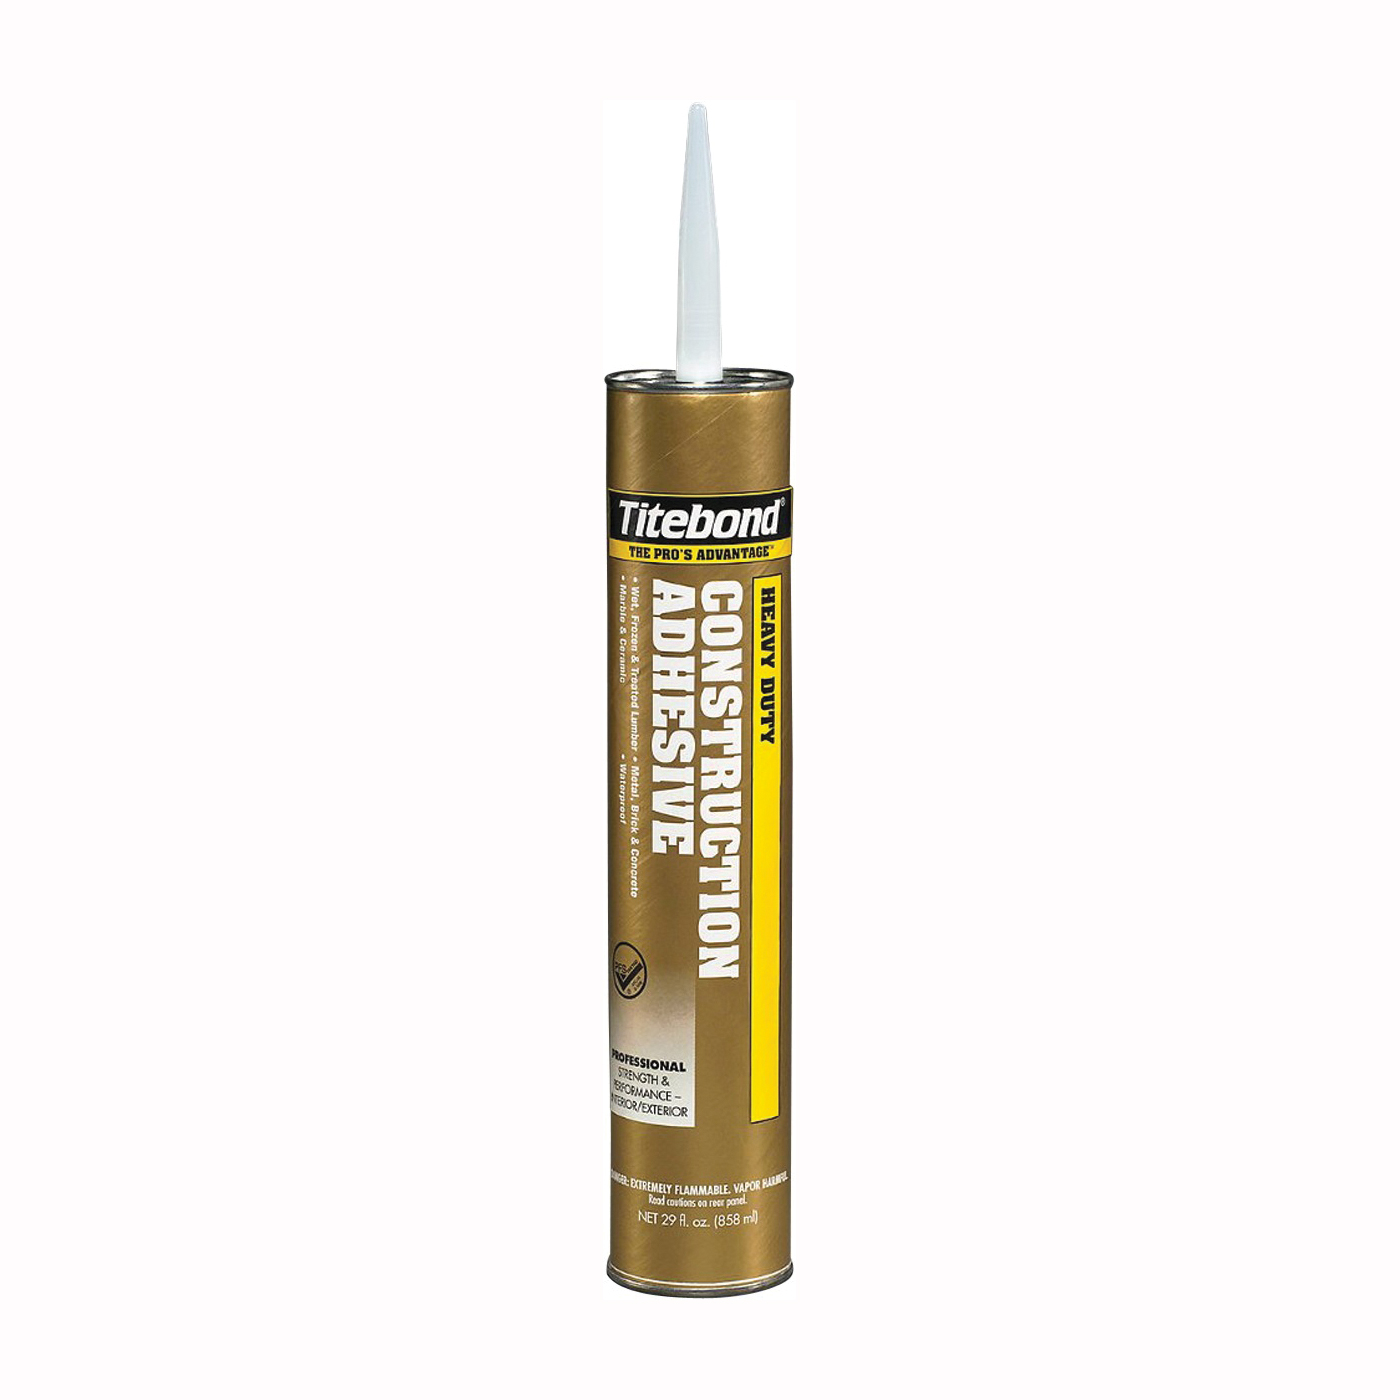 Picture of Titebond 5262 Construction Adhesive, Beige, 28 oz Package, Cartridge